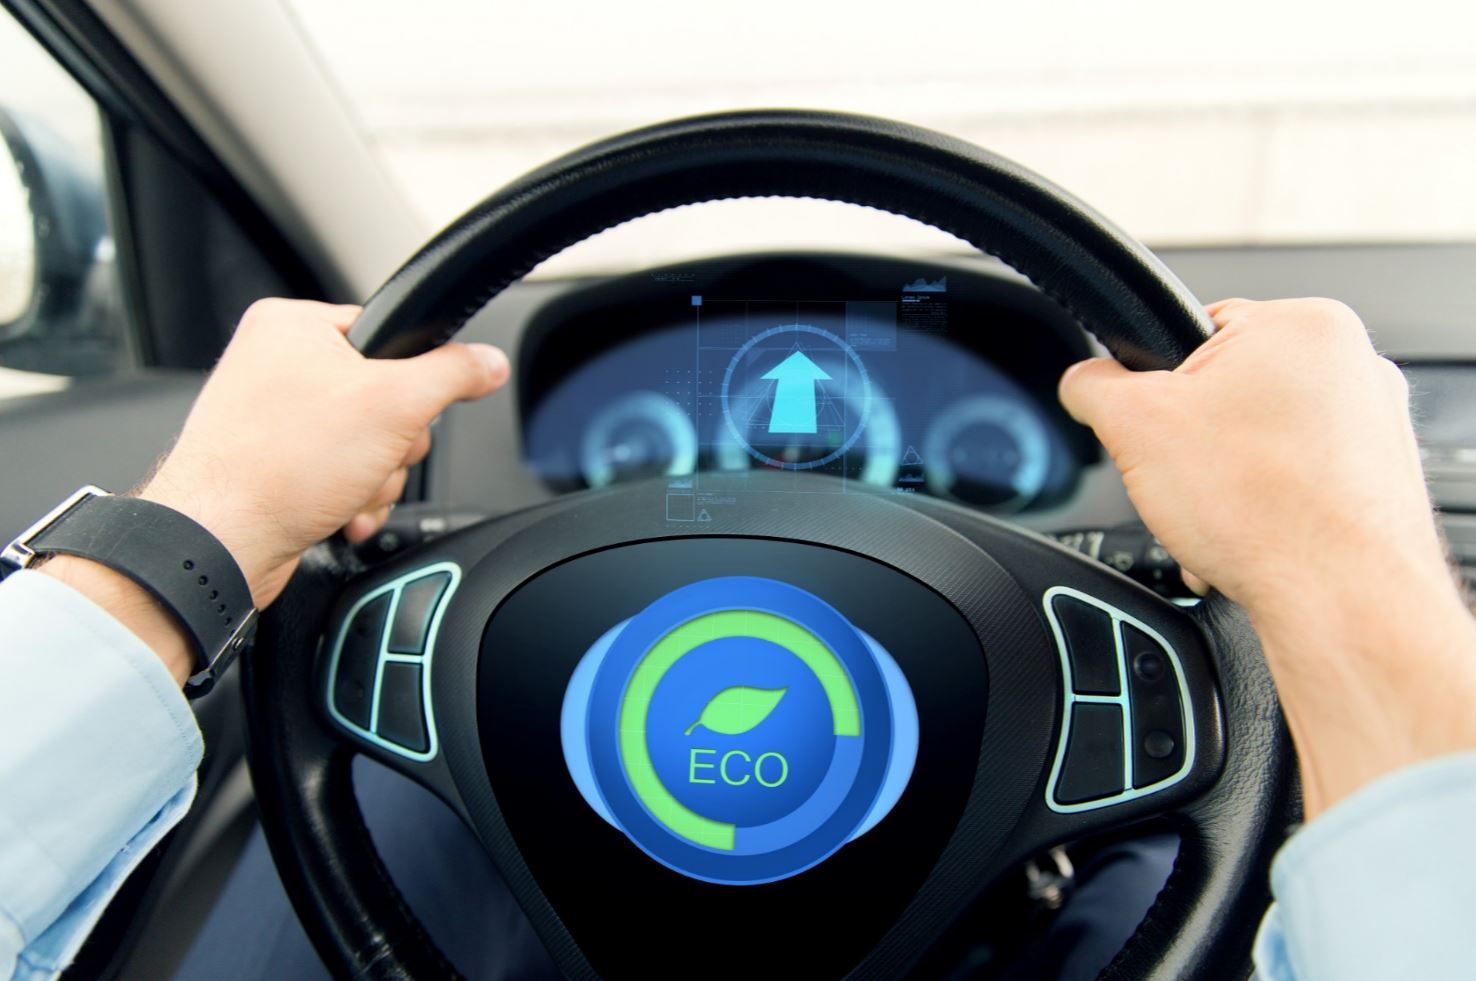 Eco sign on a steering wheel.